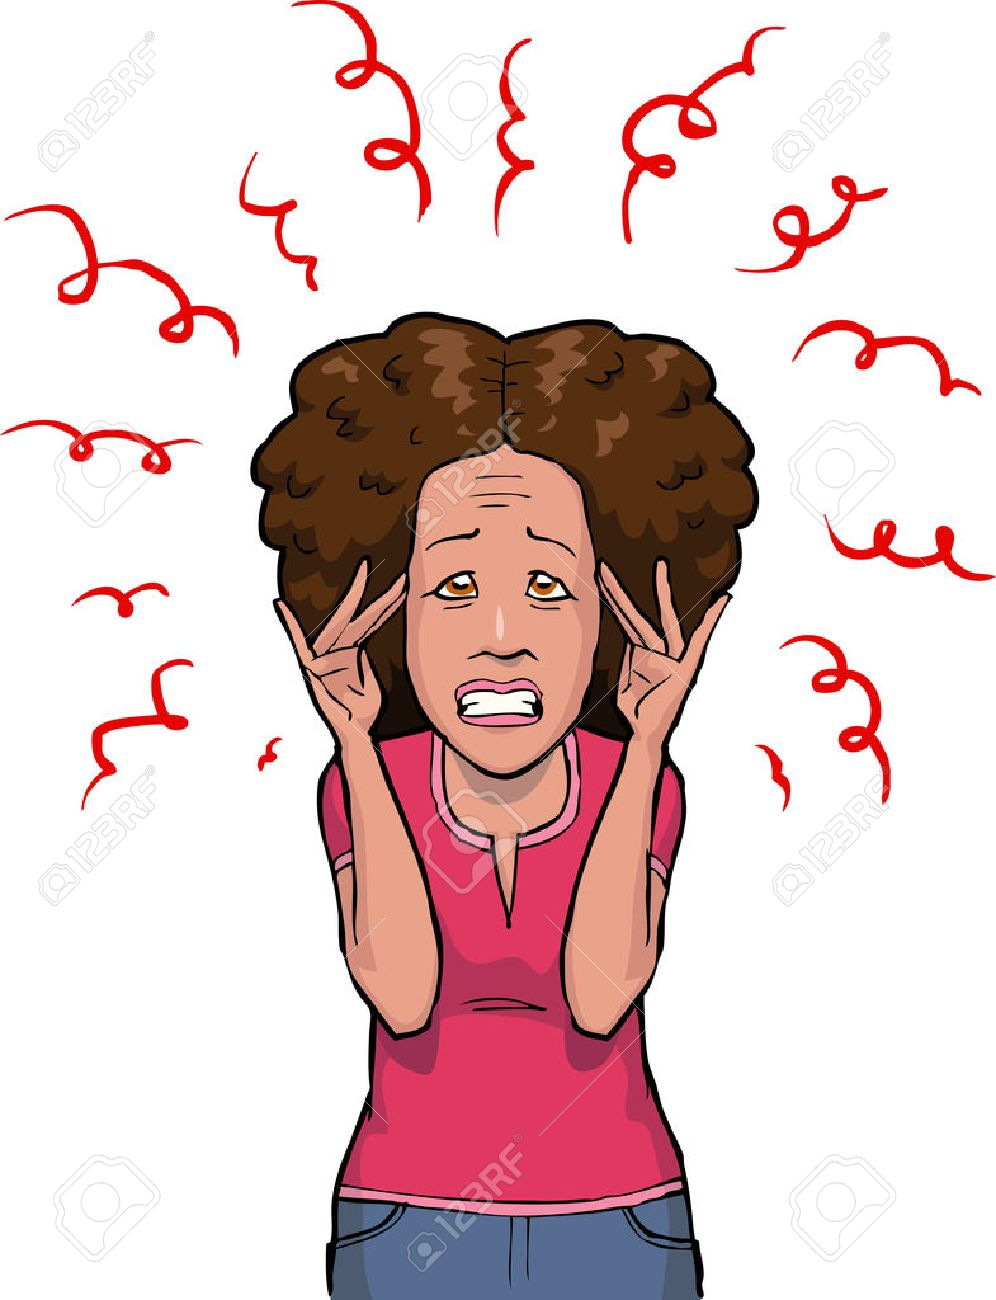 Woman in stress on white background vector illustration - 48864022